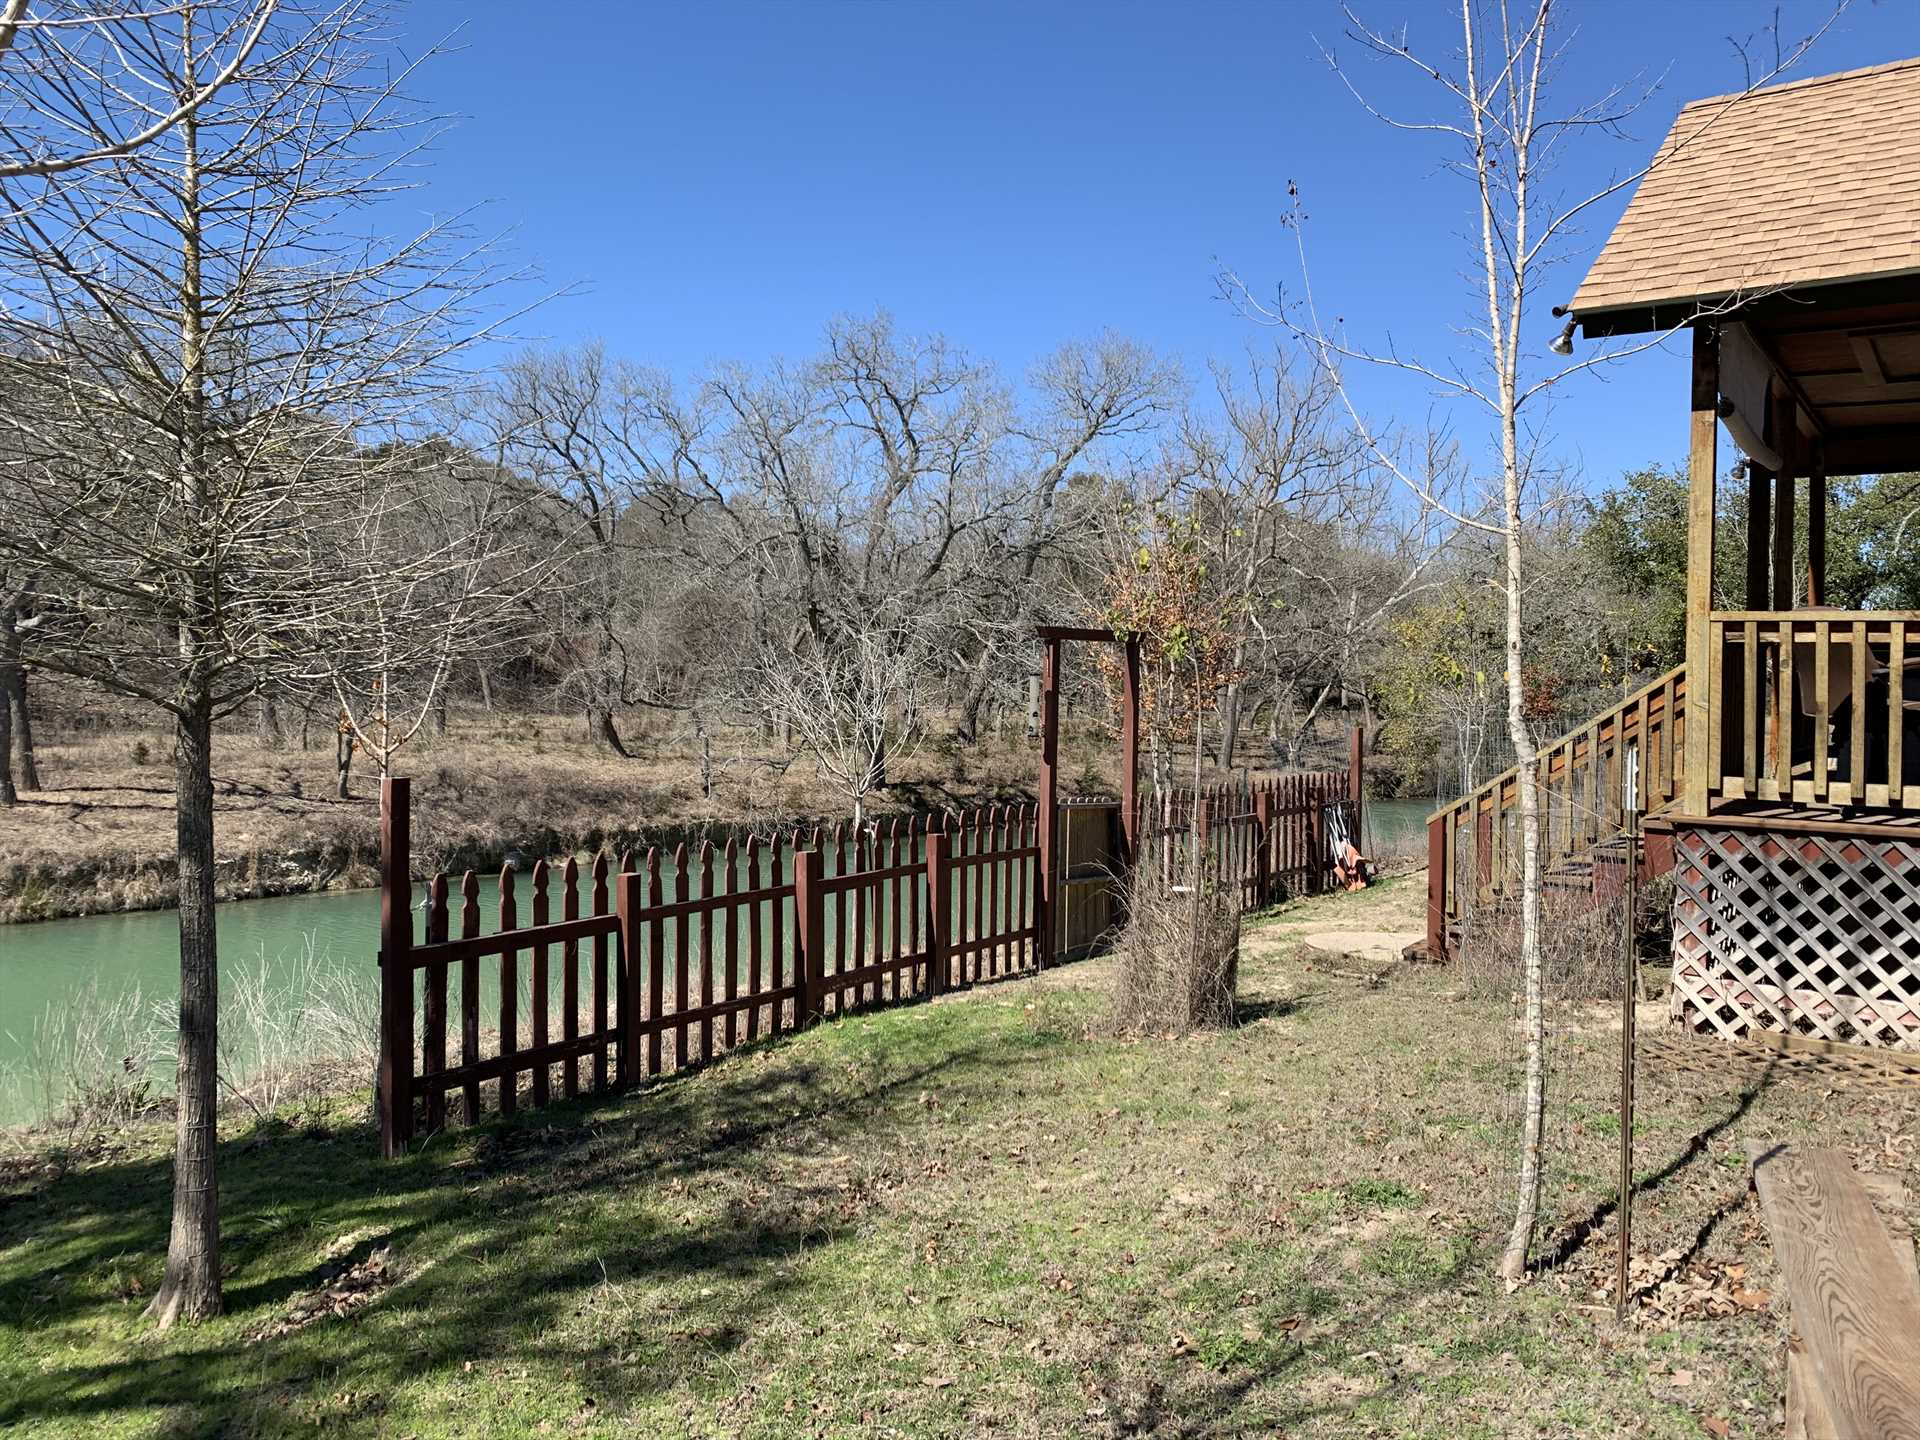 Not only will you enjoy a private creekside setting, but the tubing fun of the Medina River is just minutes away!